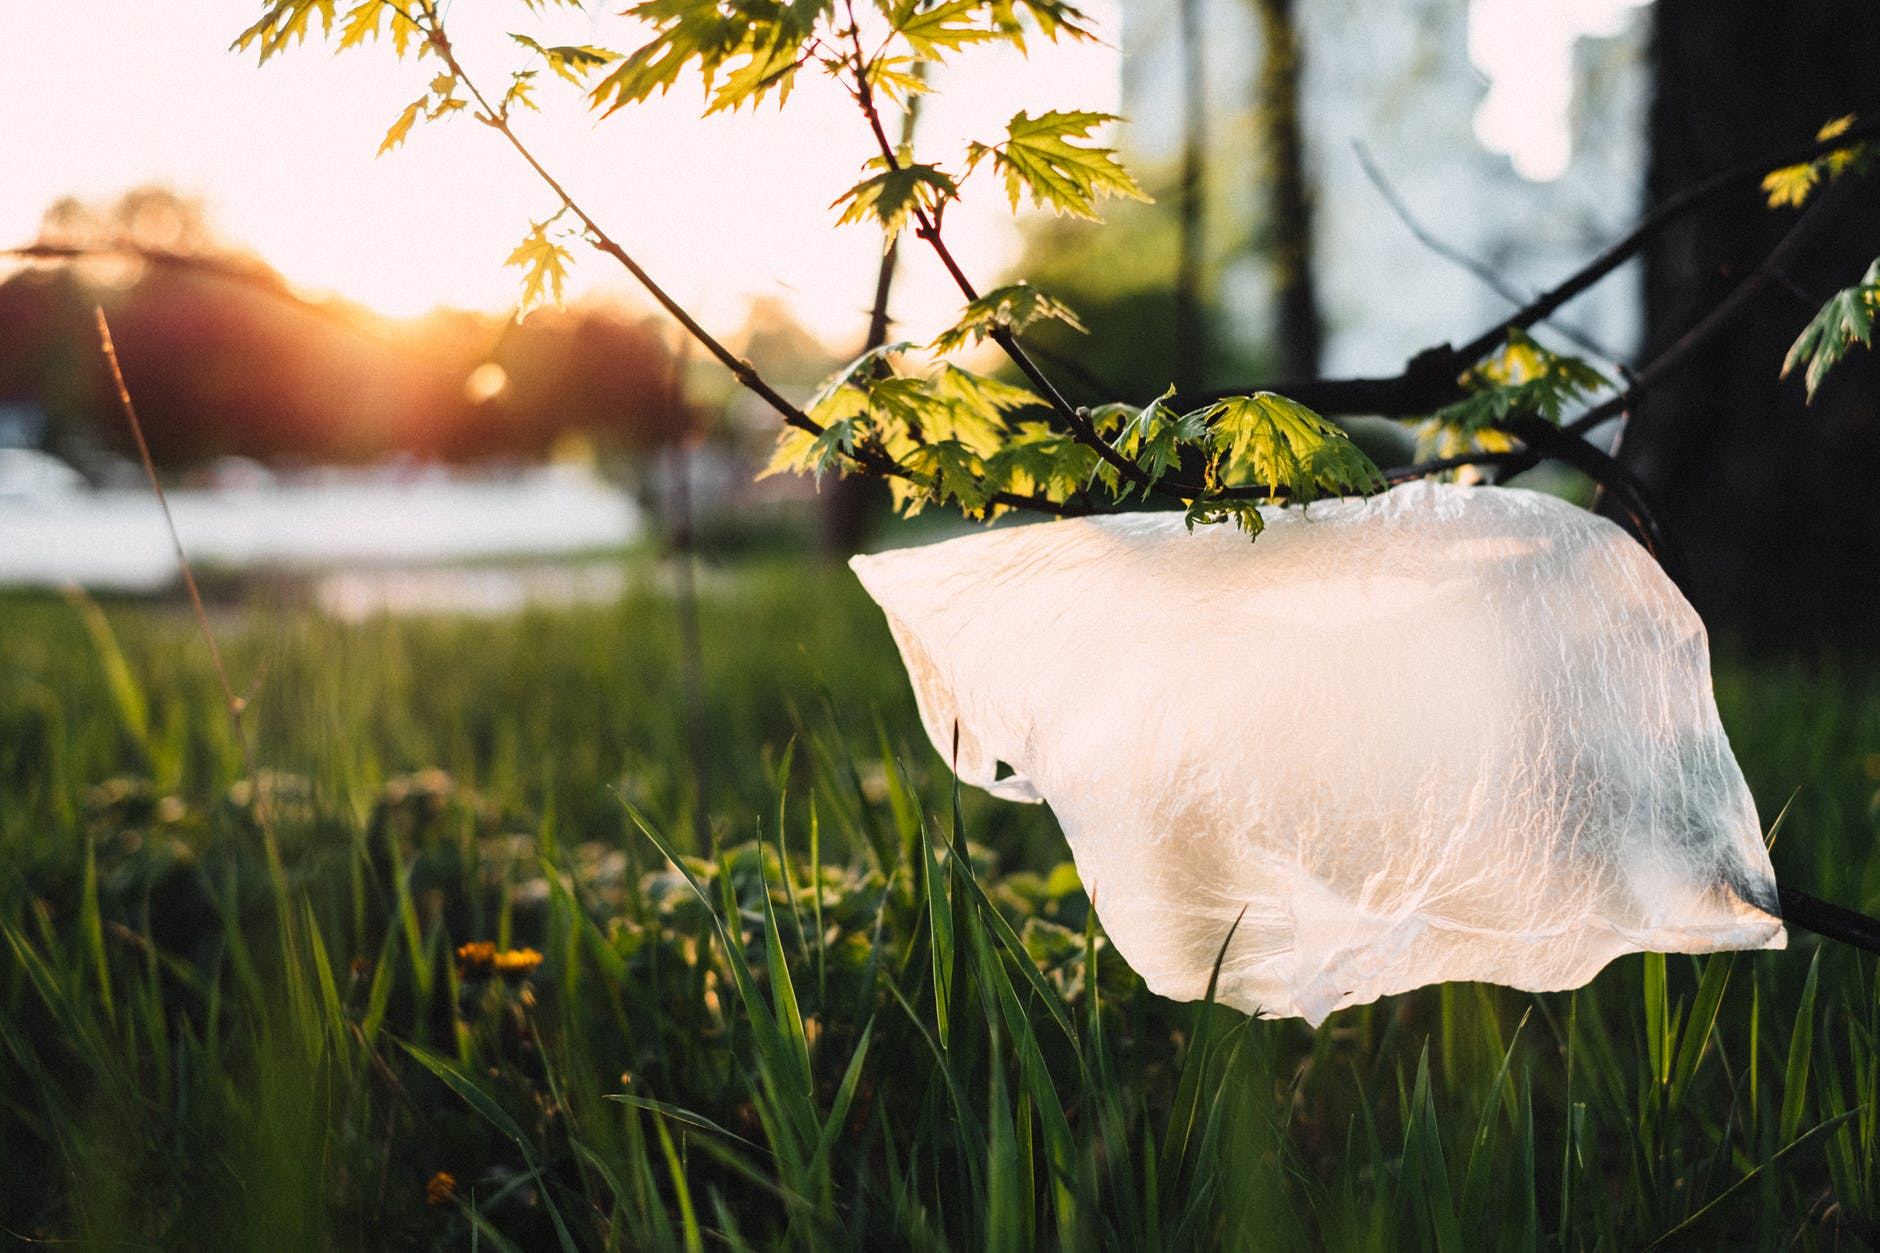 Lidl trials removal of 9p plastic bags in Wales -